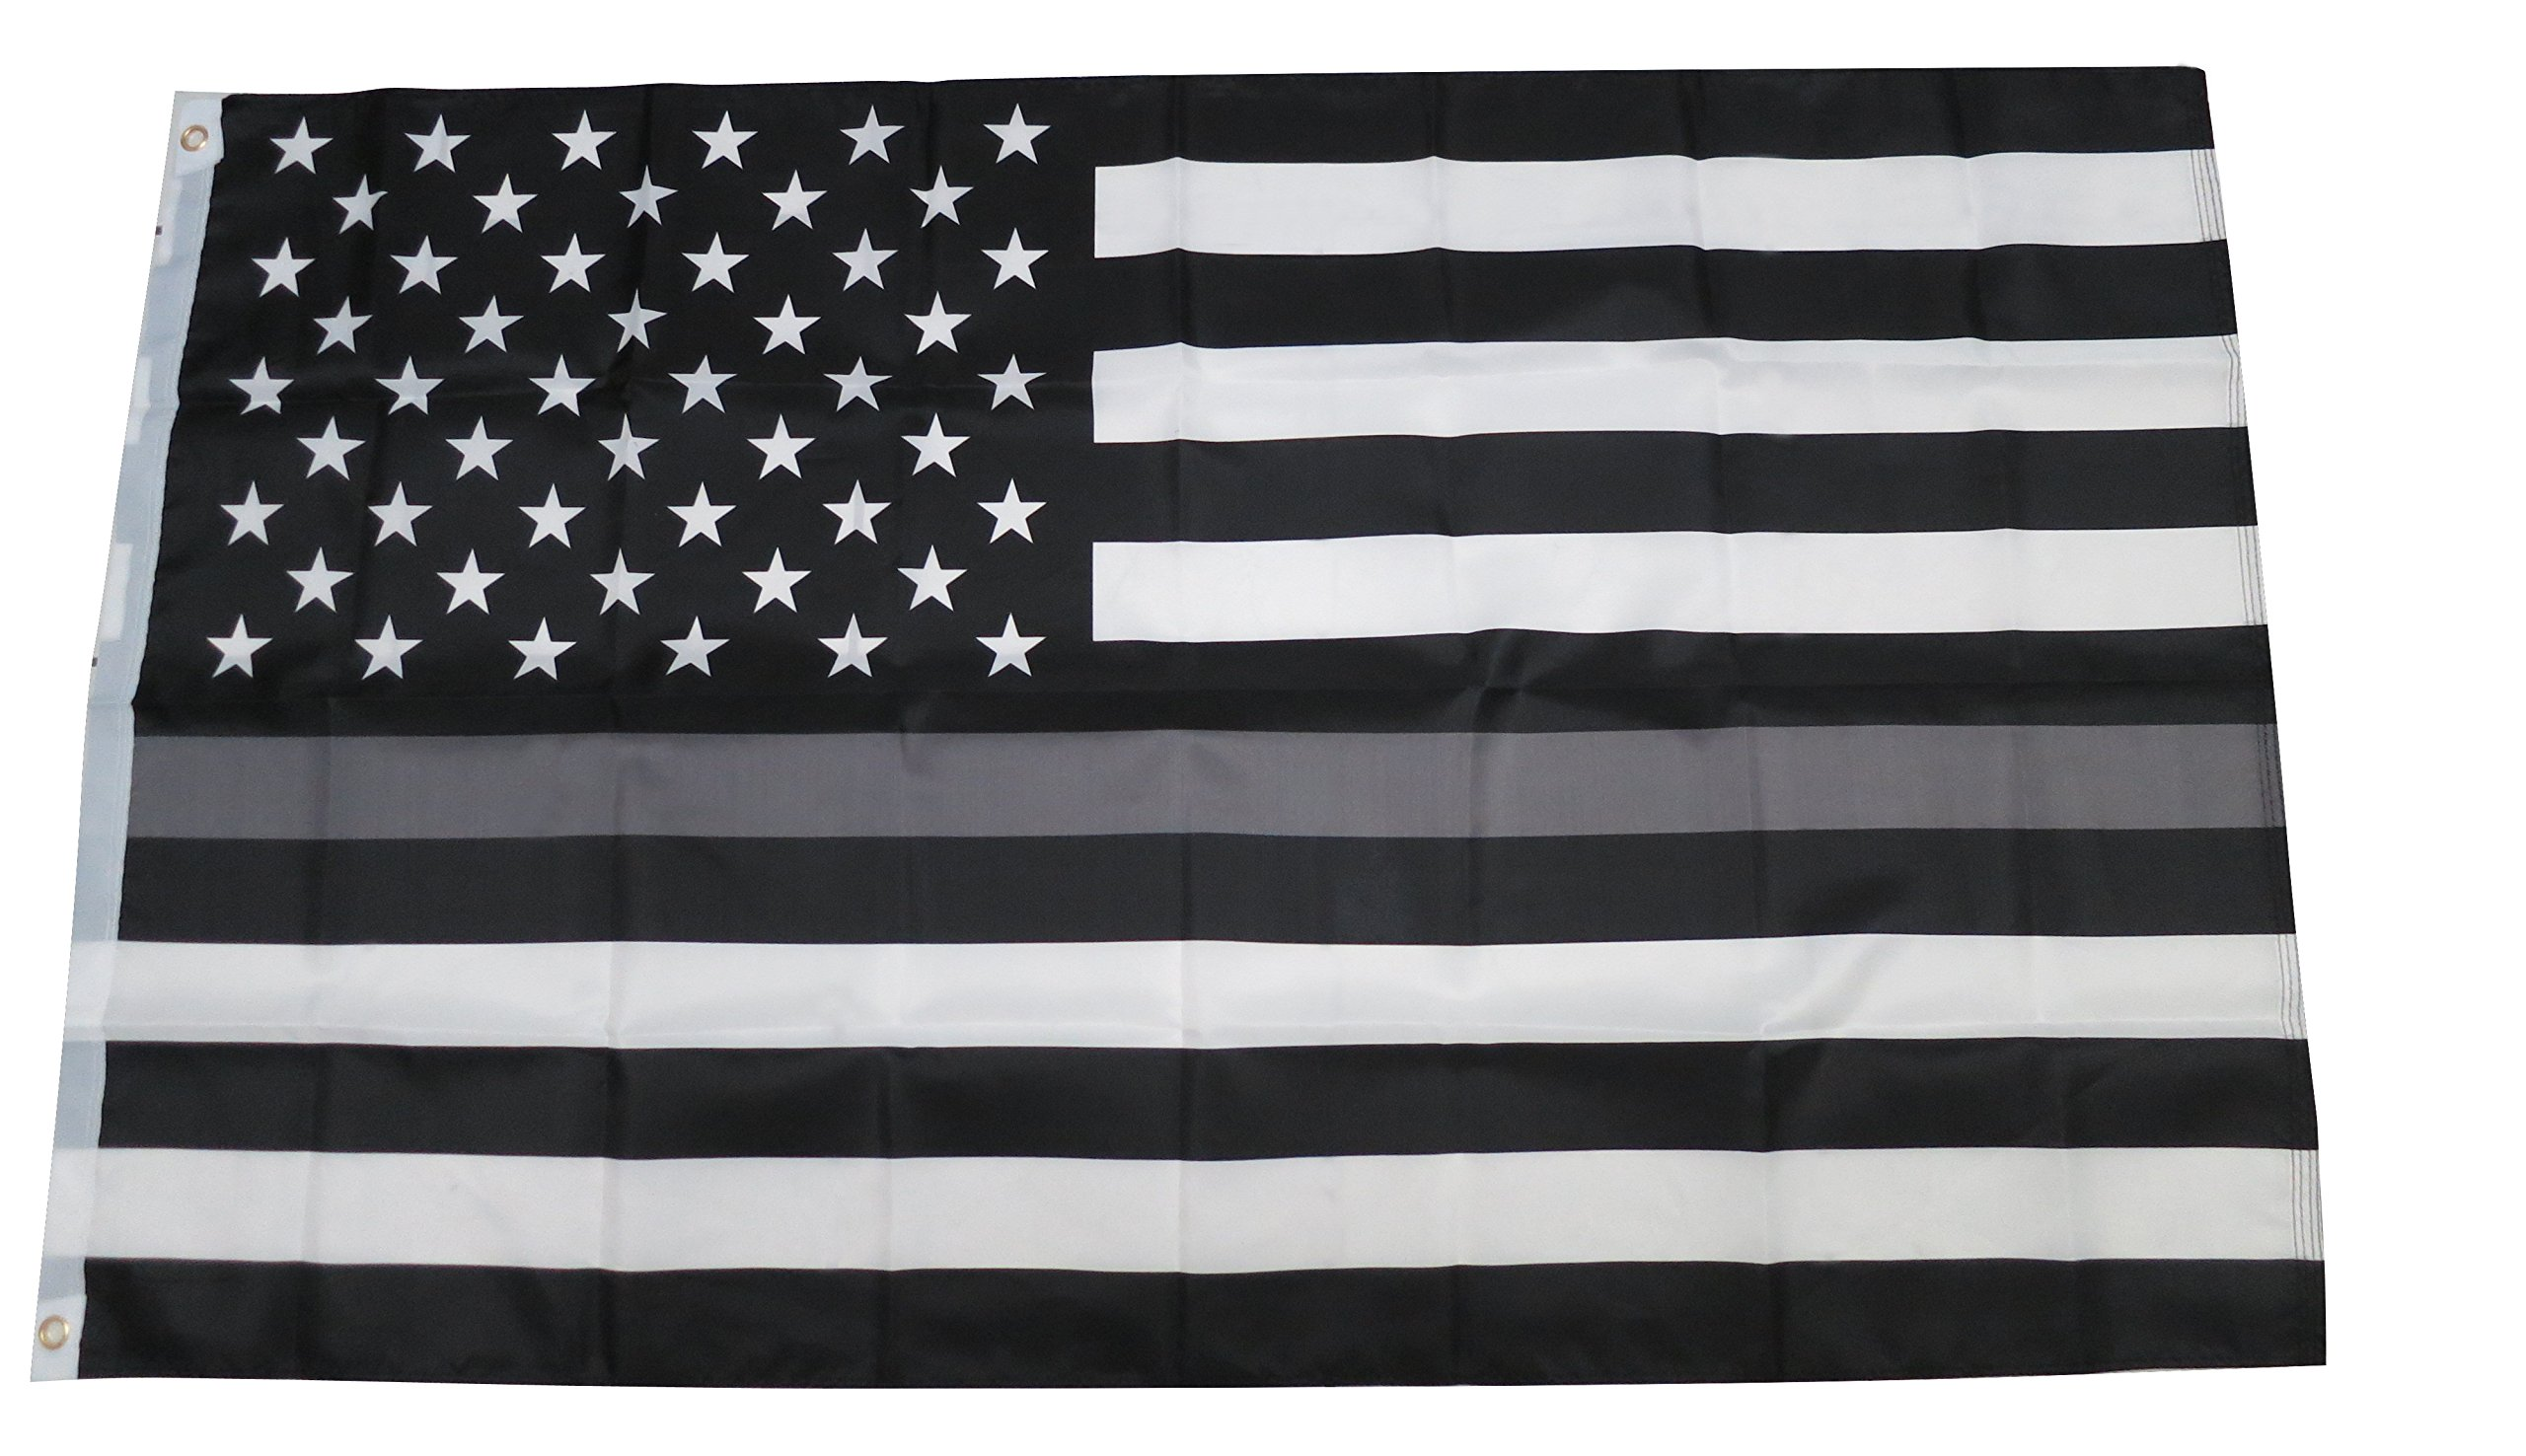 TrendyLuz Flags Thin Gray Silver Line Law Enforcement Correctional Corrections Guards Officers 3x5 Feet Flag